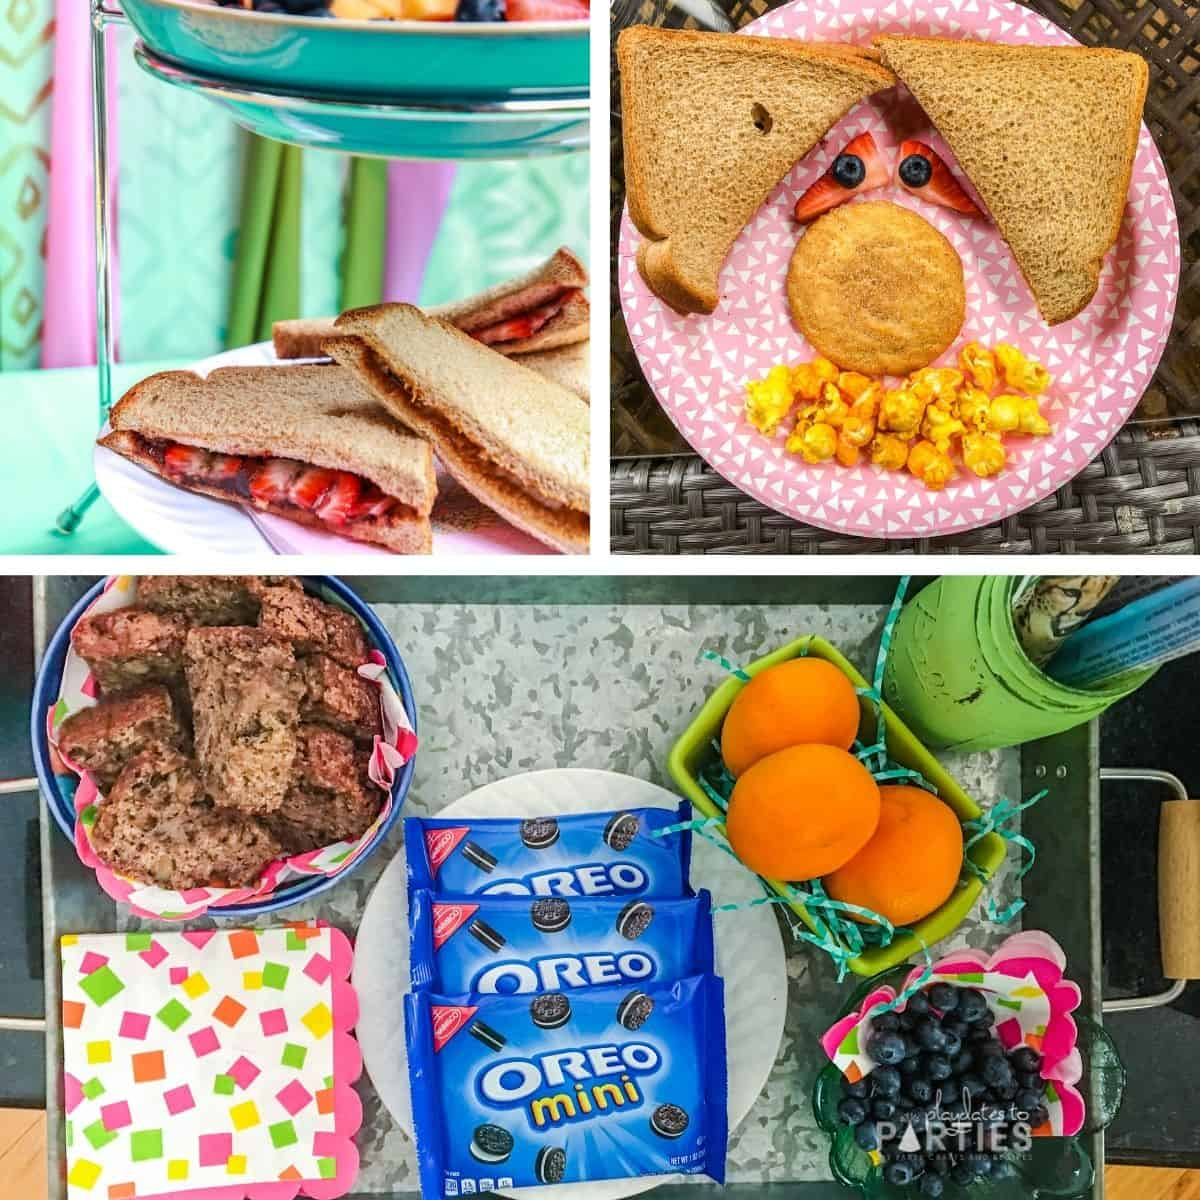 Simple picnic food including banana bread, clementines, sandwiches, popcorn, and cookies